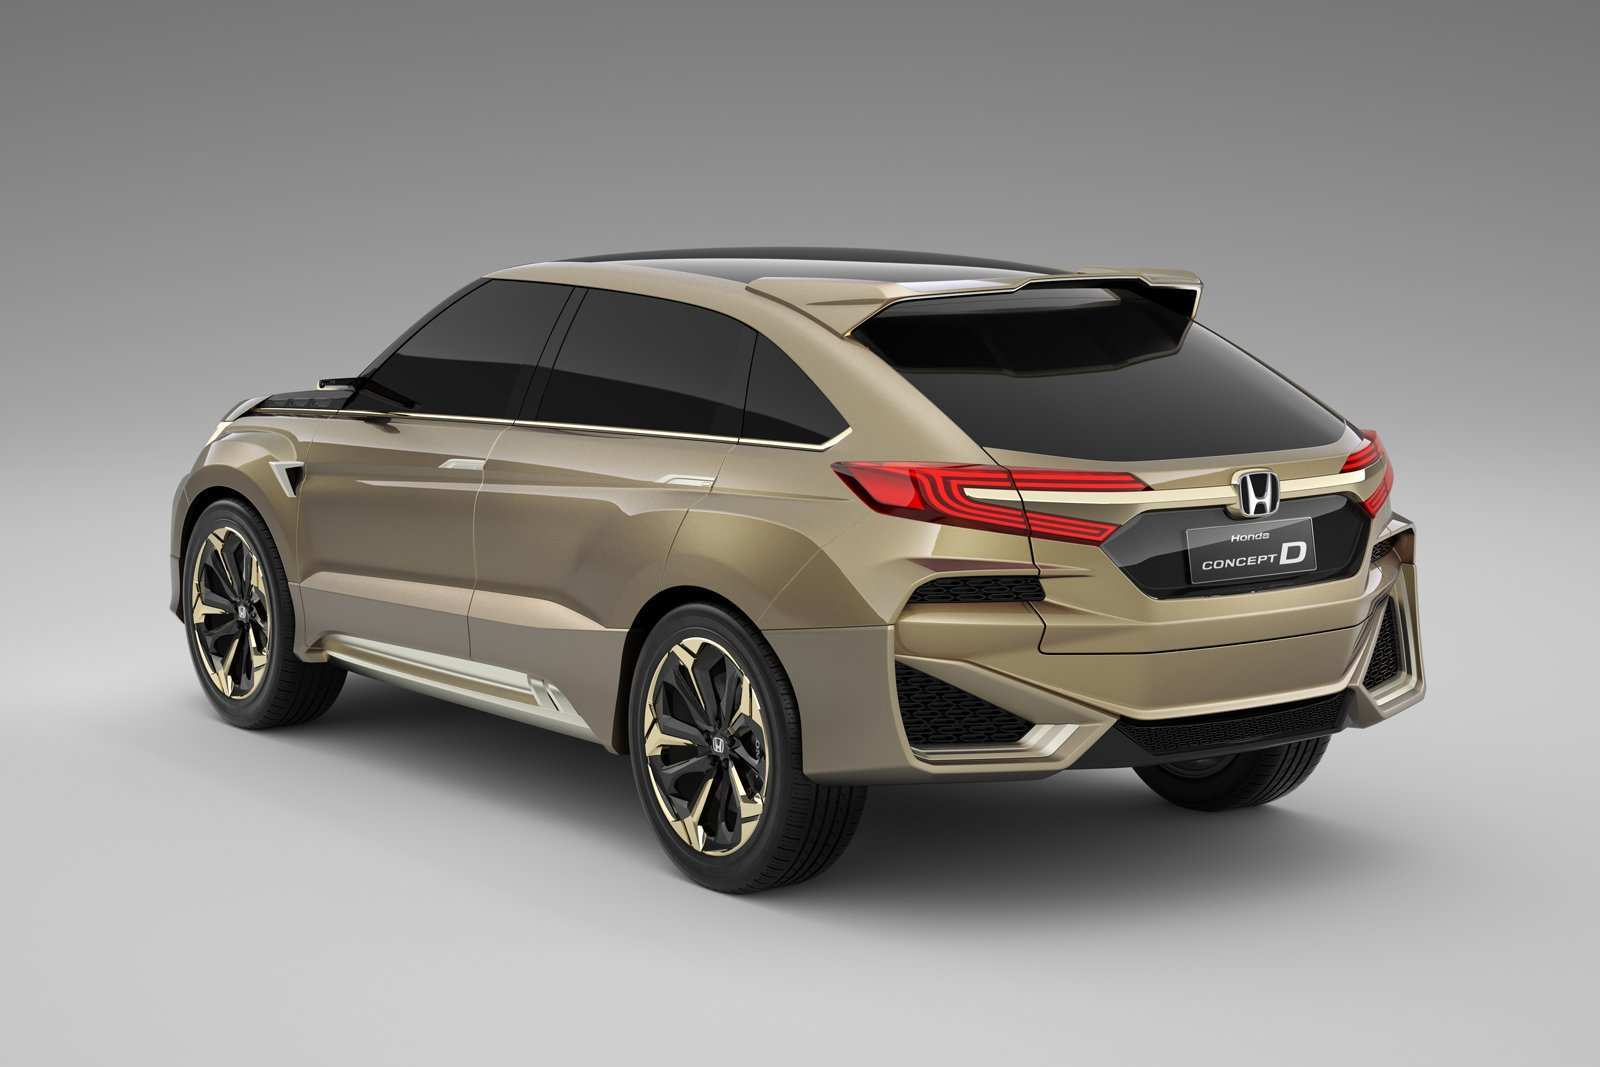 77 The Best When Will 2020 Acura Mdx Be Released Style